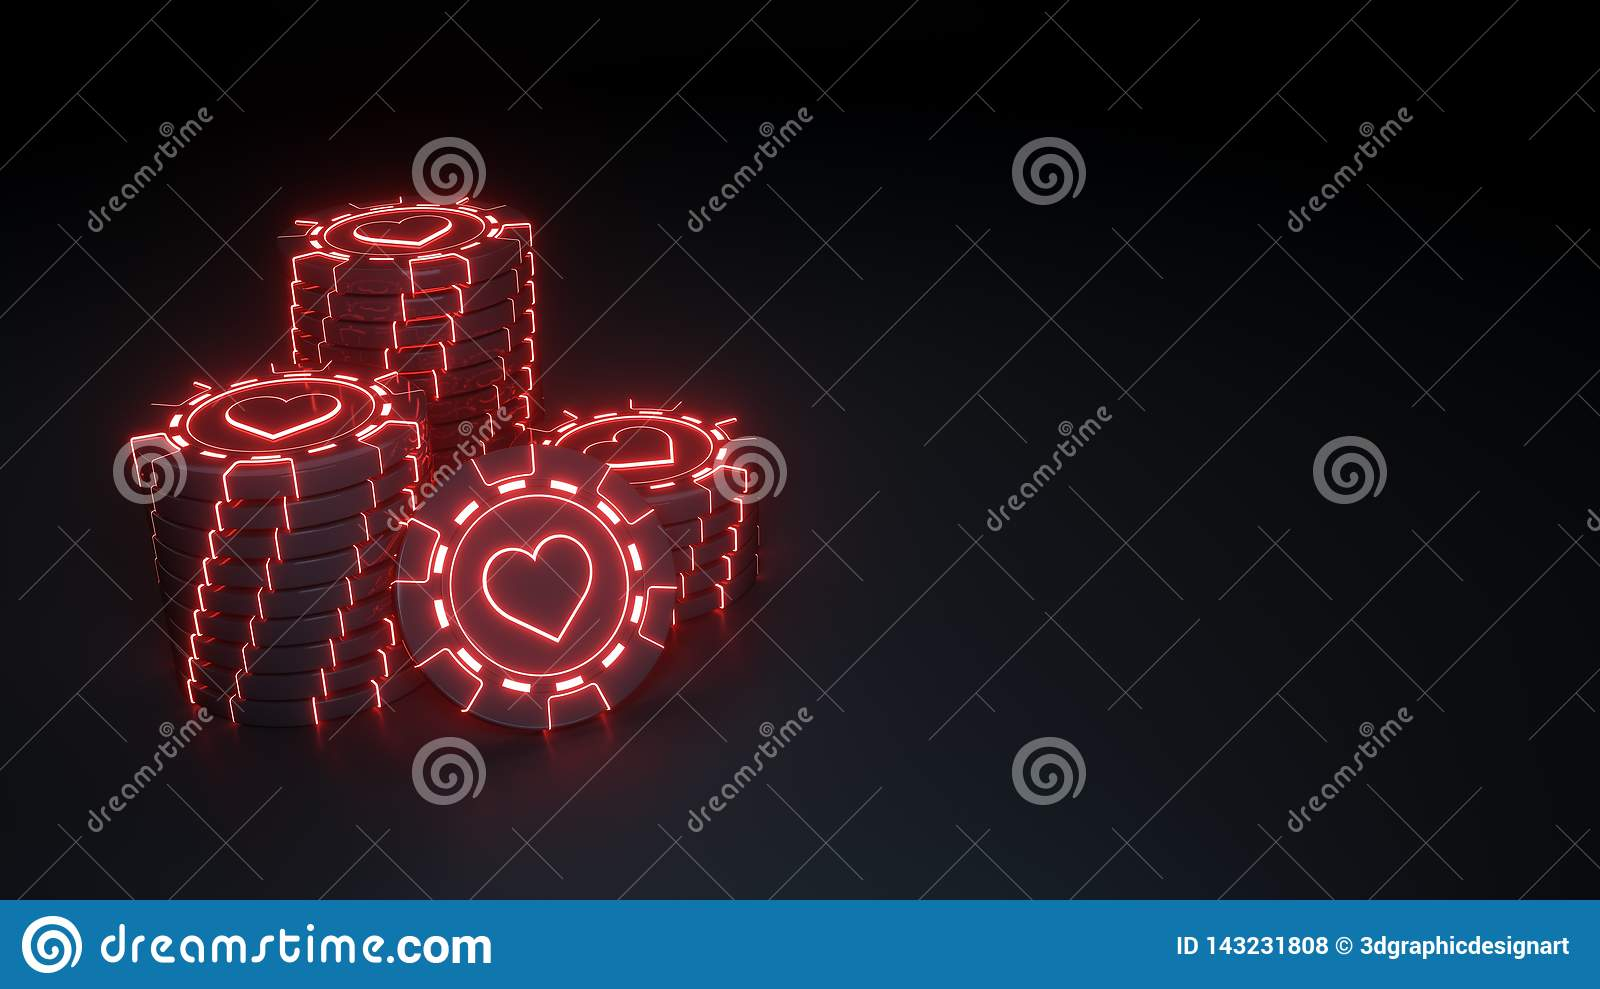 Casino chip stacks hearts Concept with glowing neon red lights on the black background - 3D Illustration